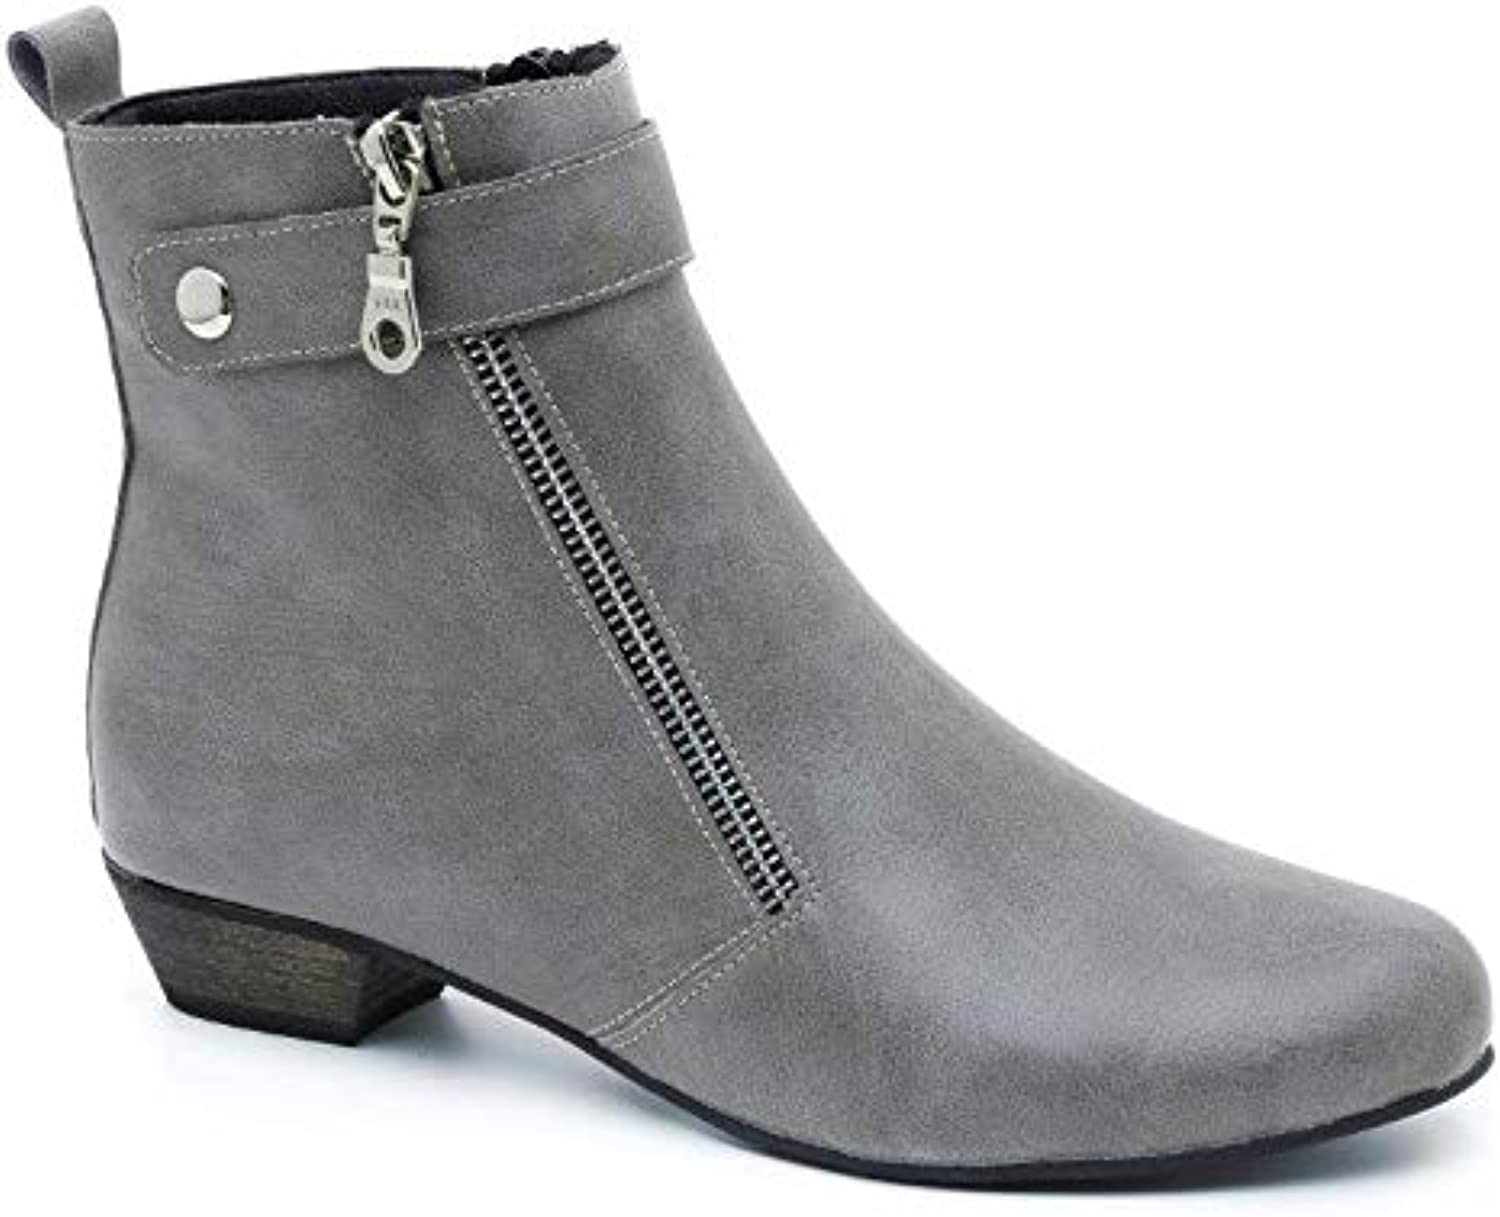 Bunique Portugal Ankle Boots for Women and Girls, Vegan Leather, Chunky 1.2 inch Heel.